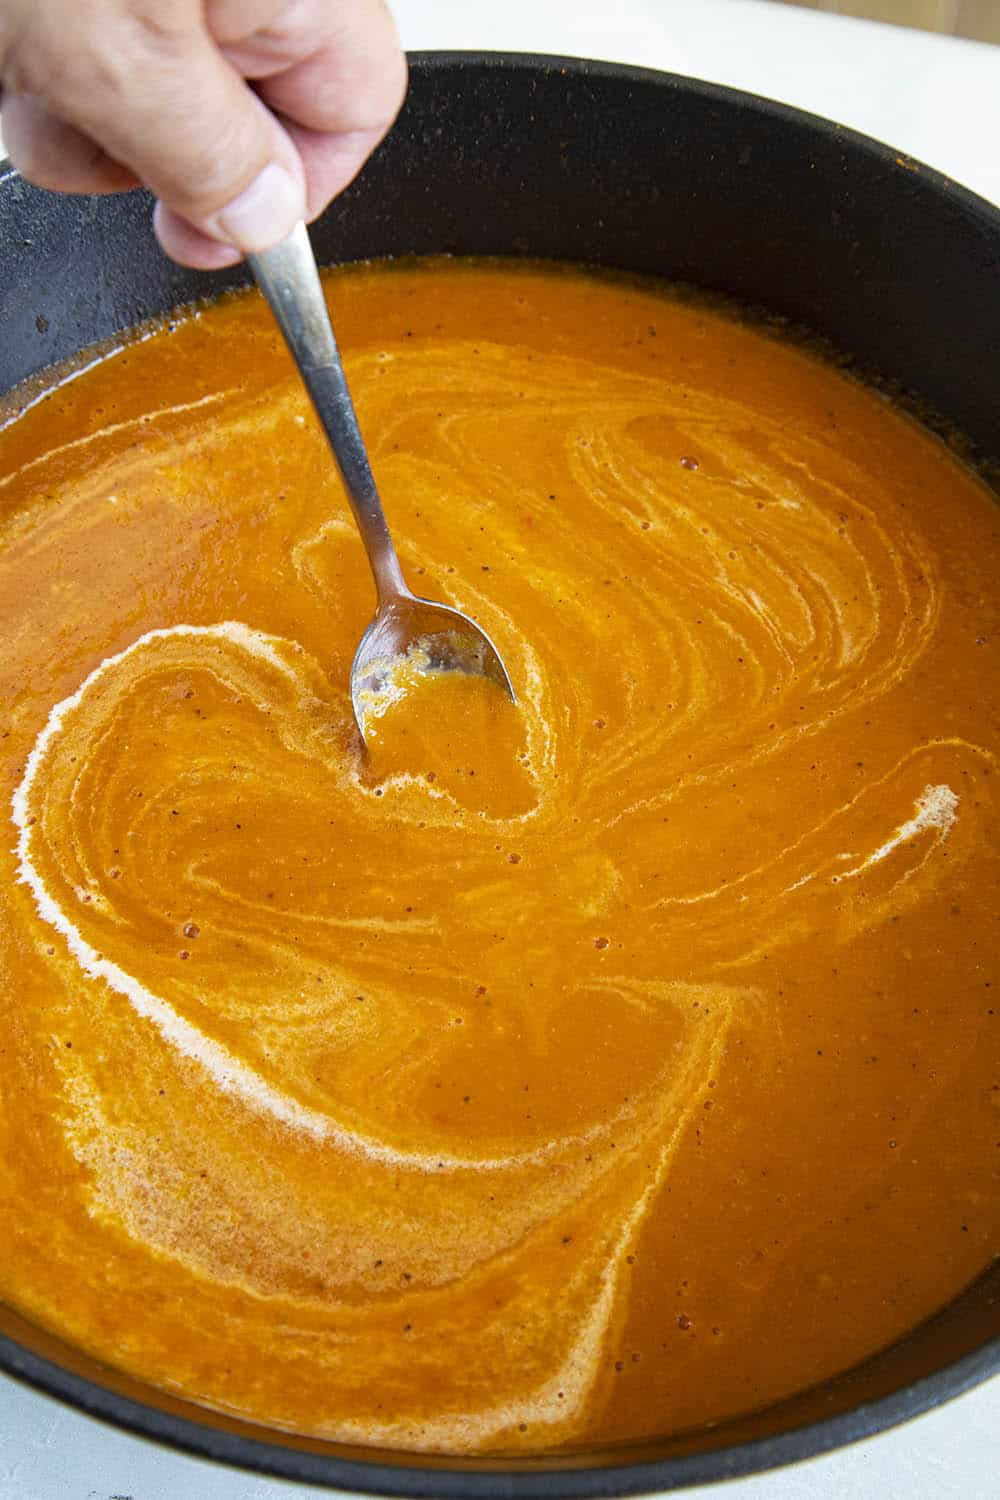 Swirling heavy cream into my roasted tomato soup